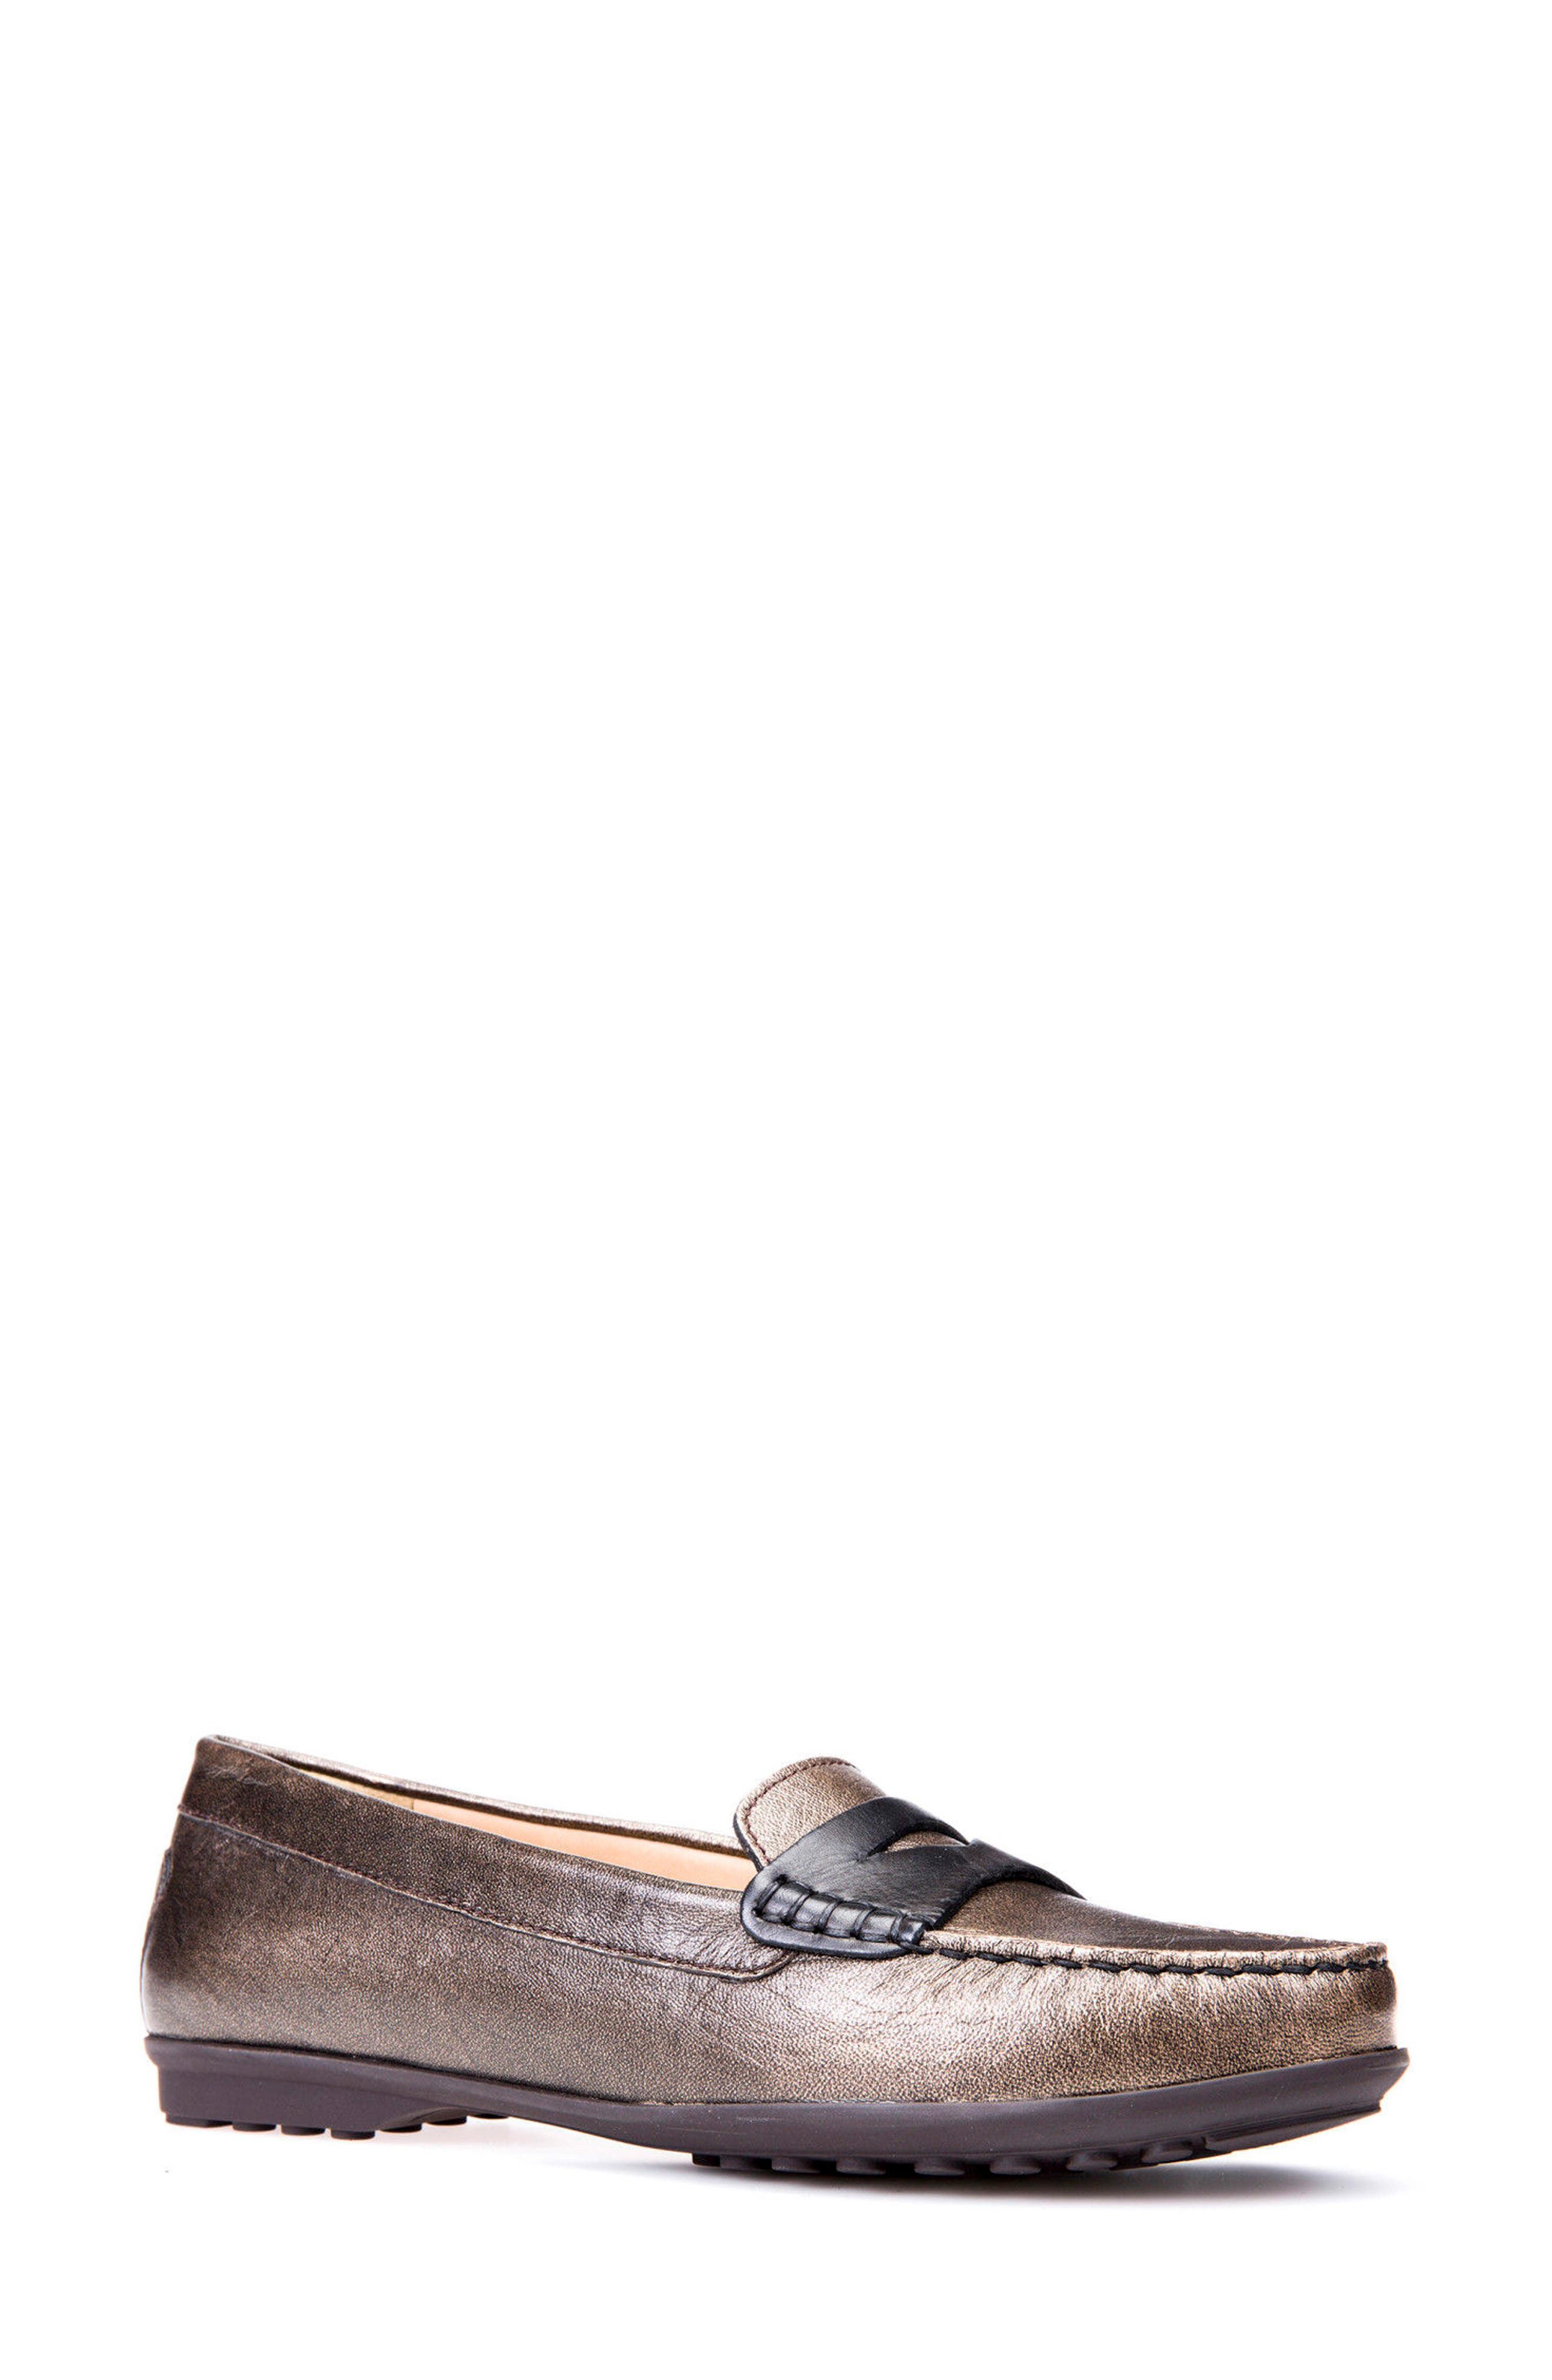 Main Image - Geox Elidia 5 Penny Loafer (Women)